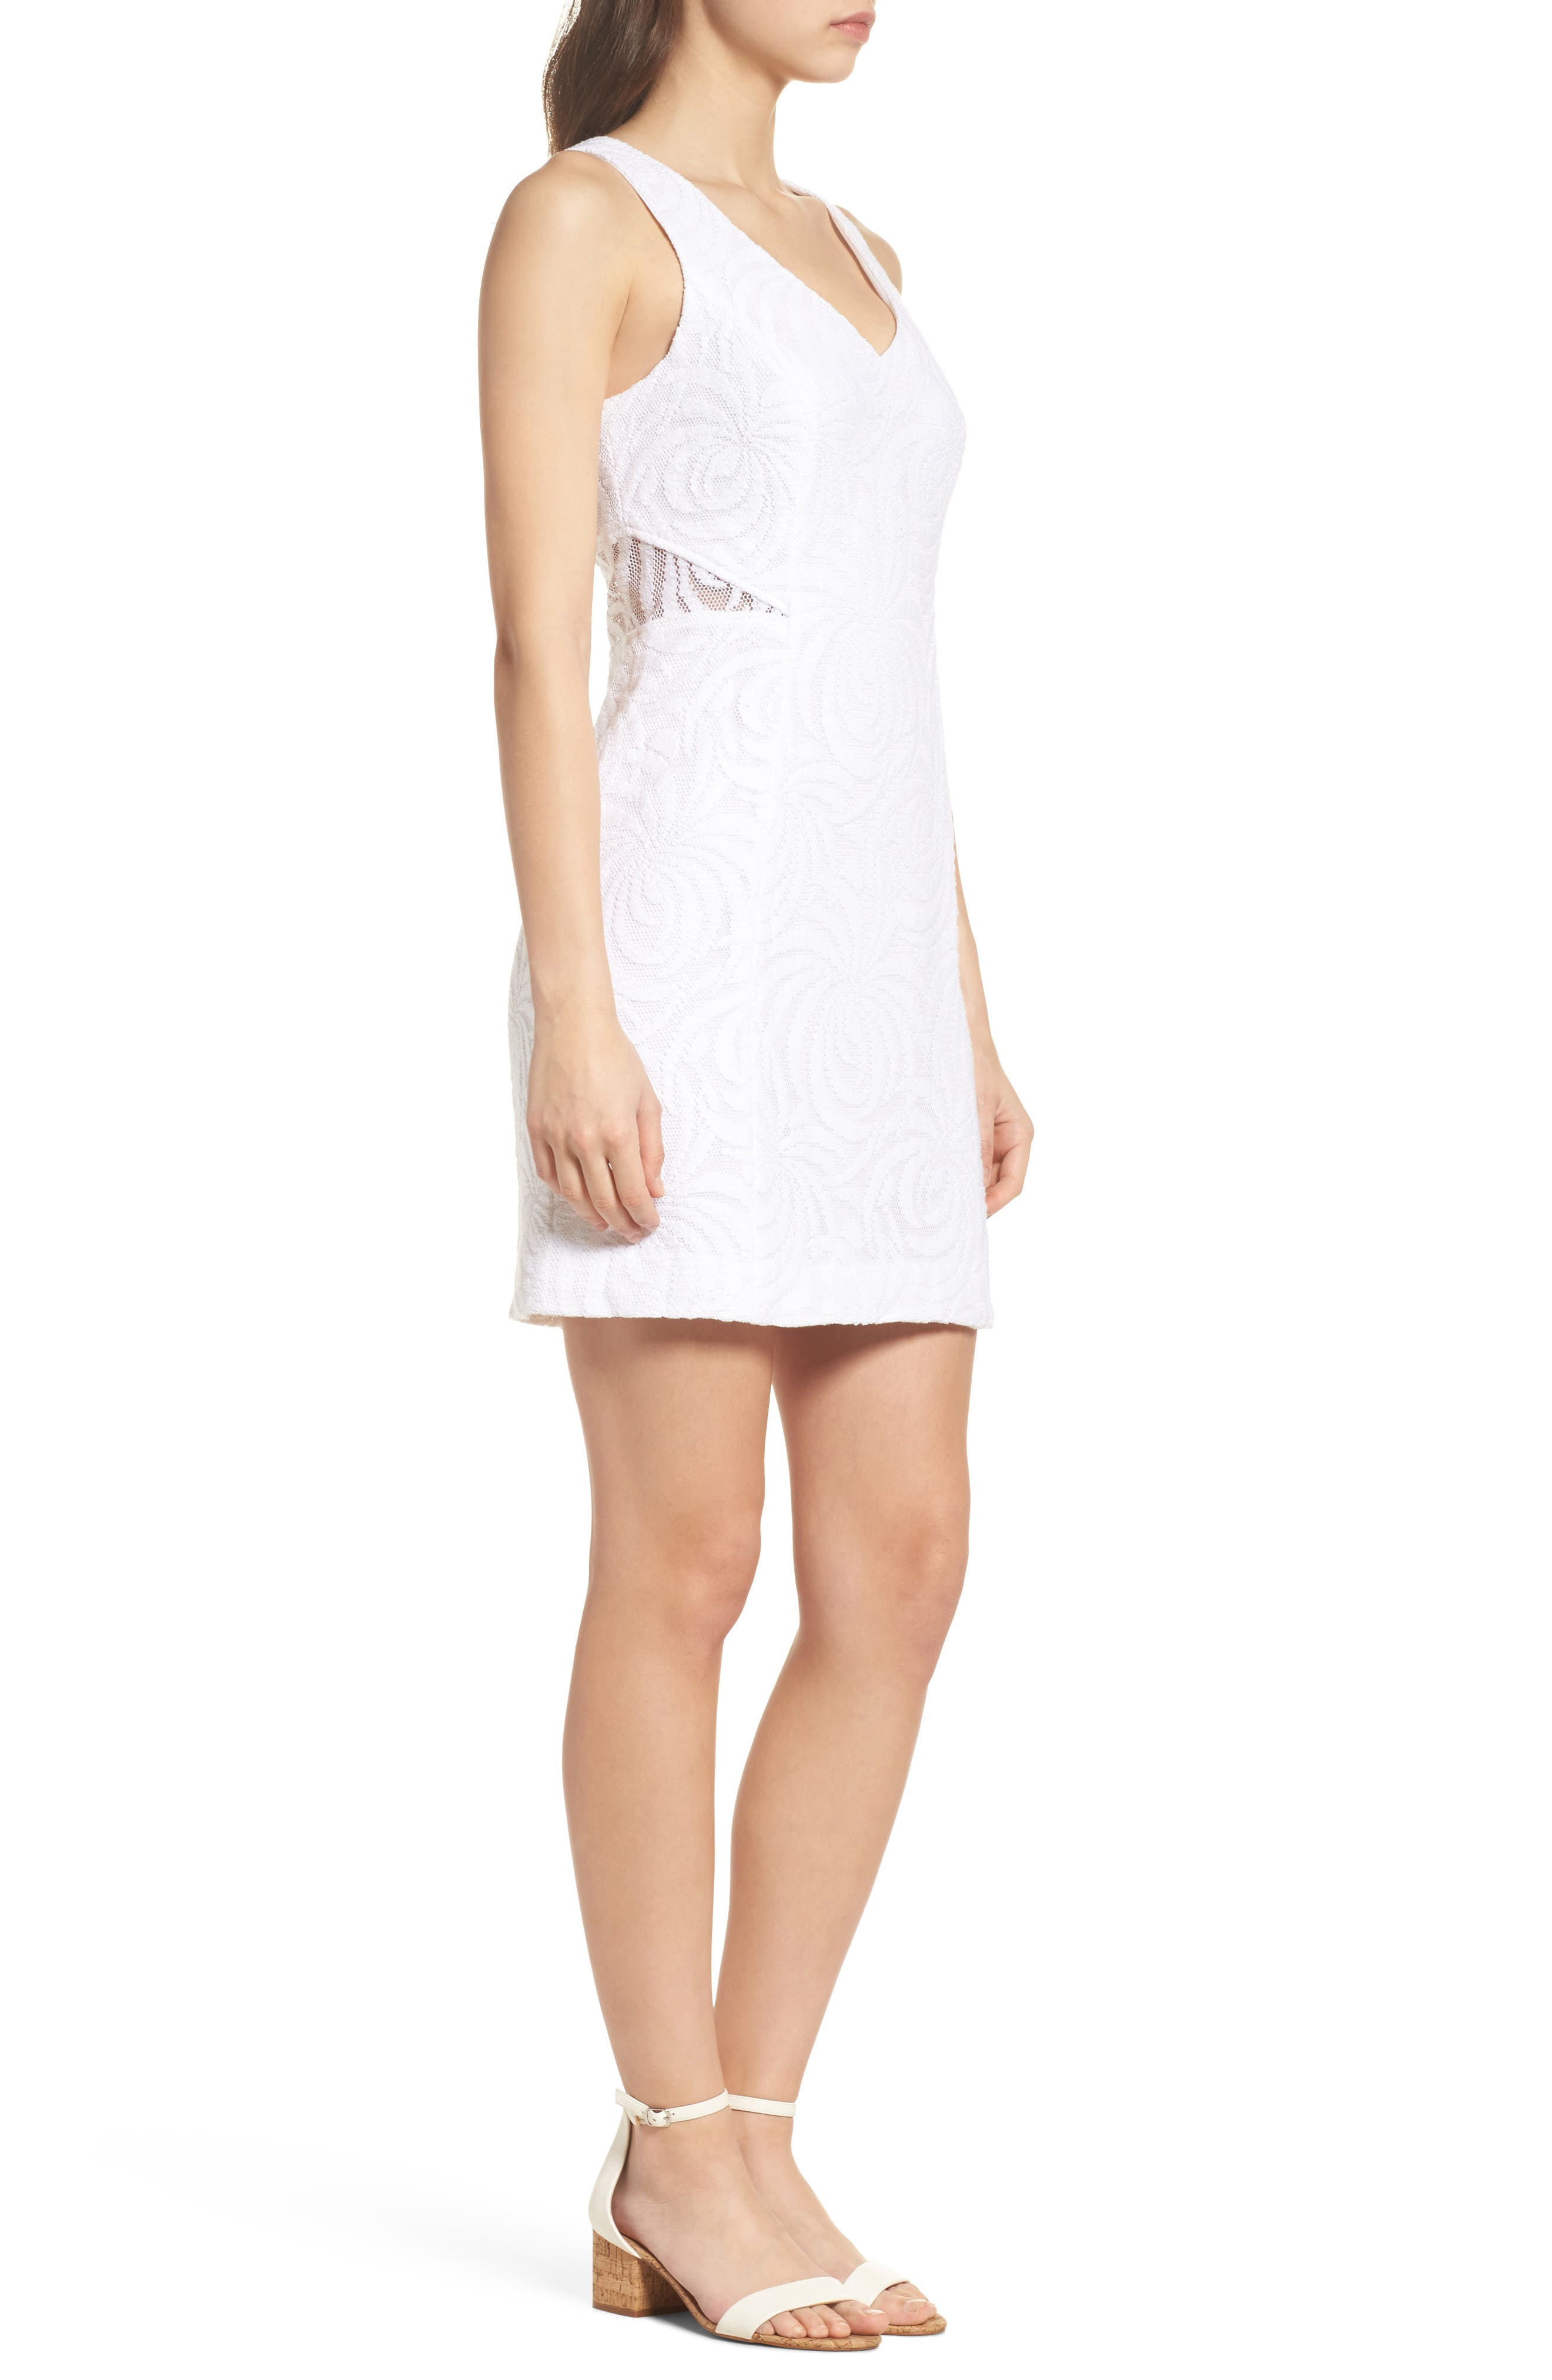 Blakely Lace Shift Dress,                             Alternate thumbnail 3, color,                             Resort White Sea Swirling Lace